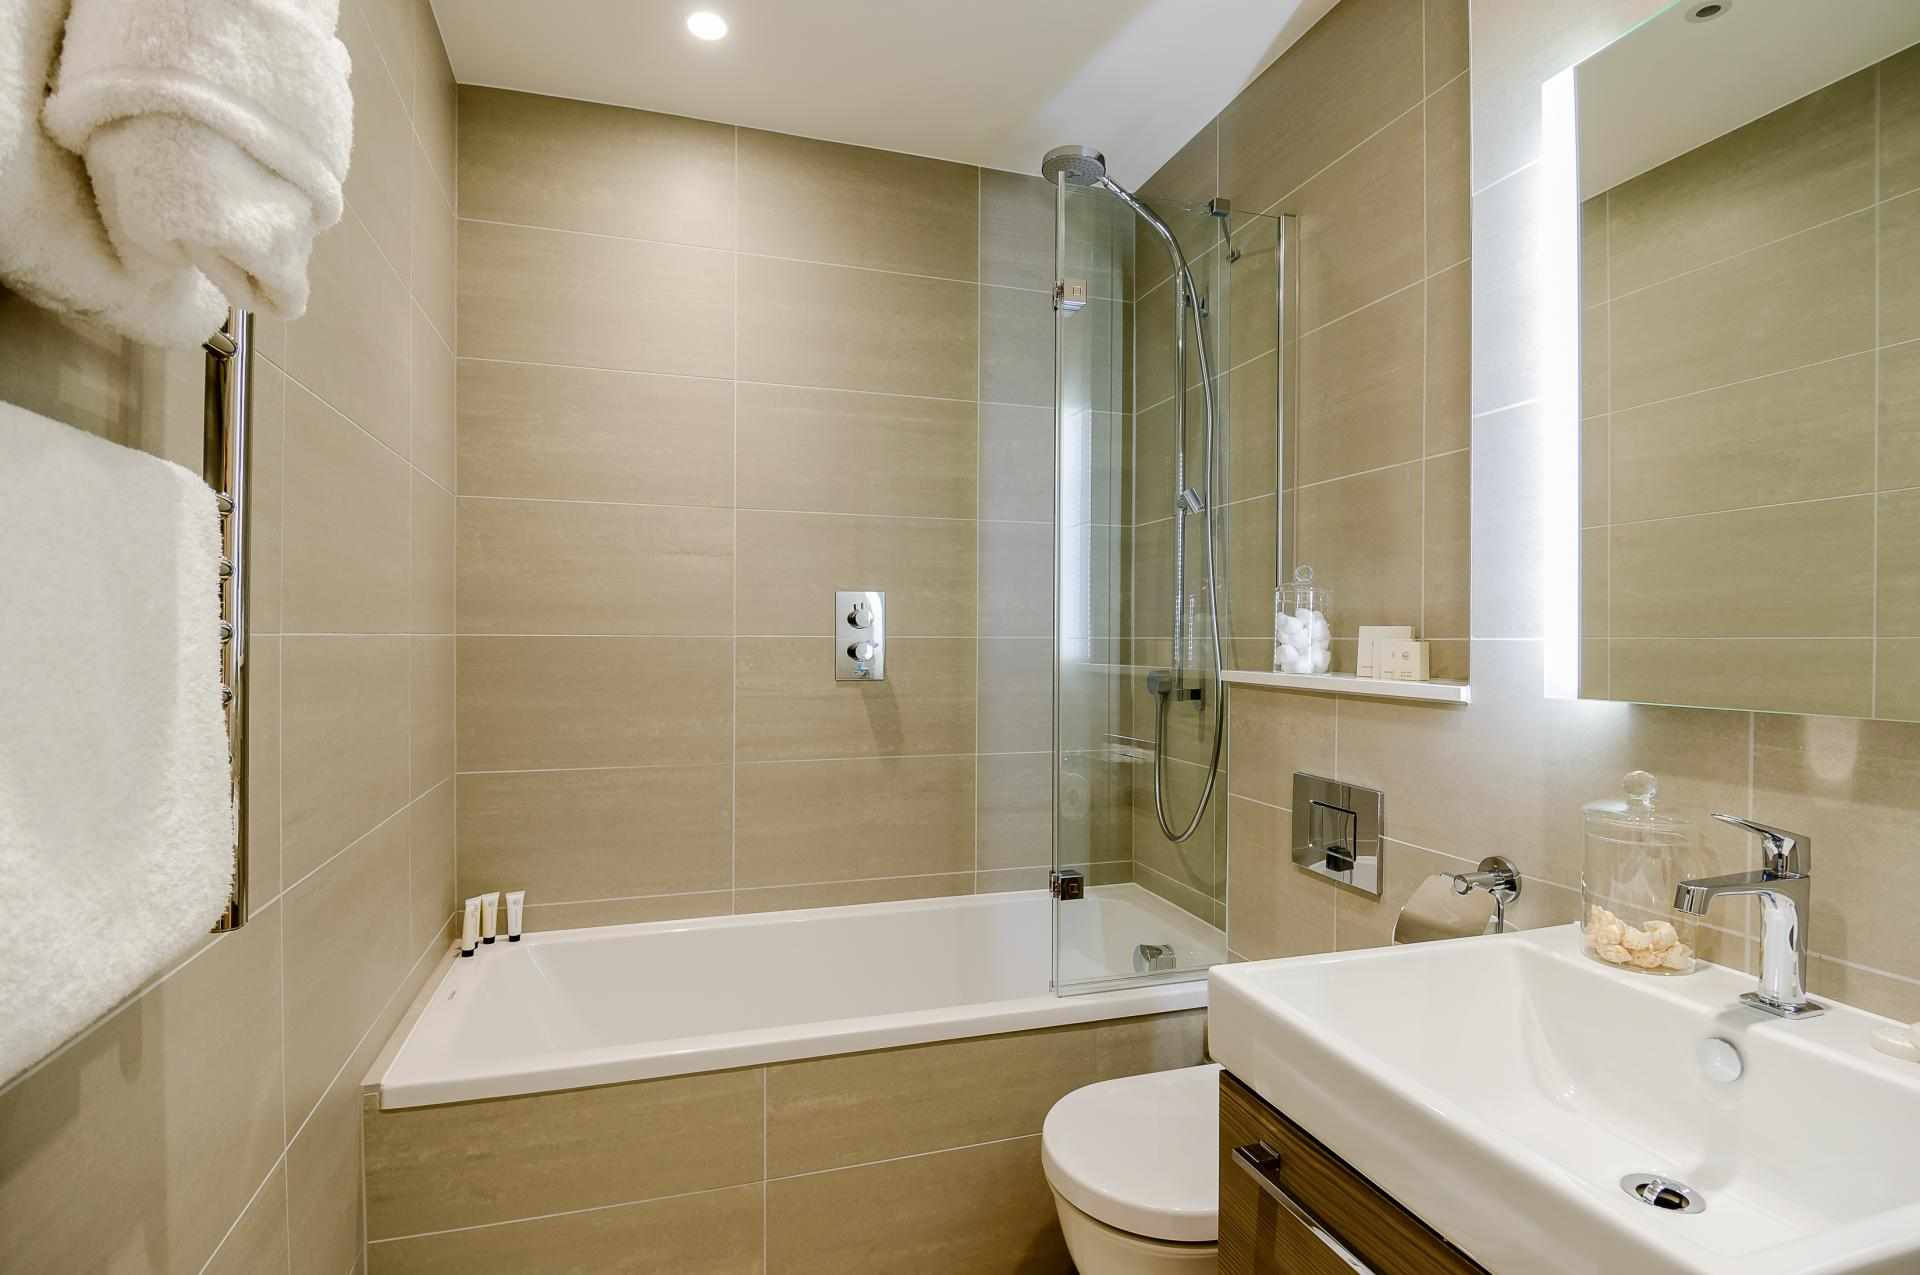 Bathroom at LAK Serviced Apartments, Gloucester Road, London - Citybase Apartments